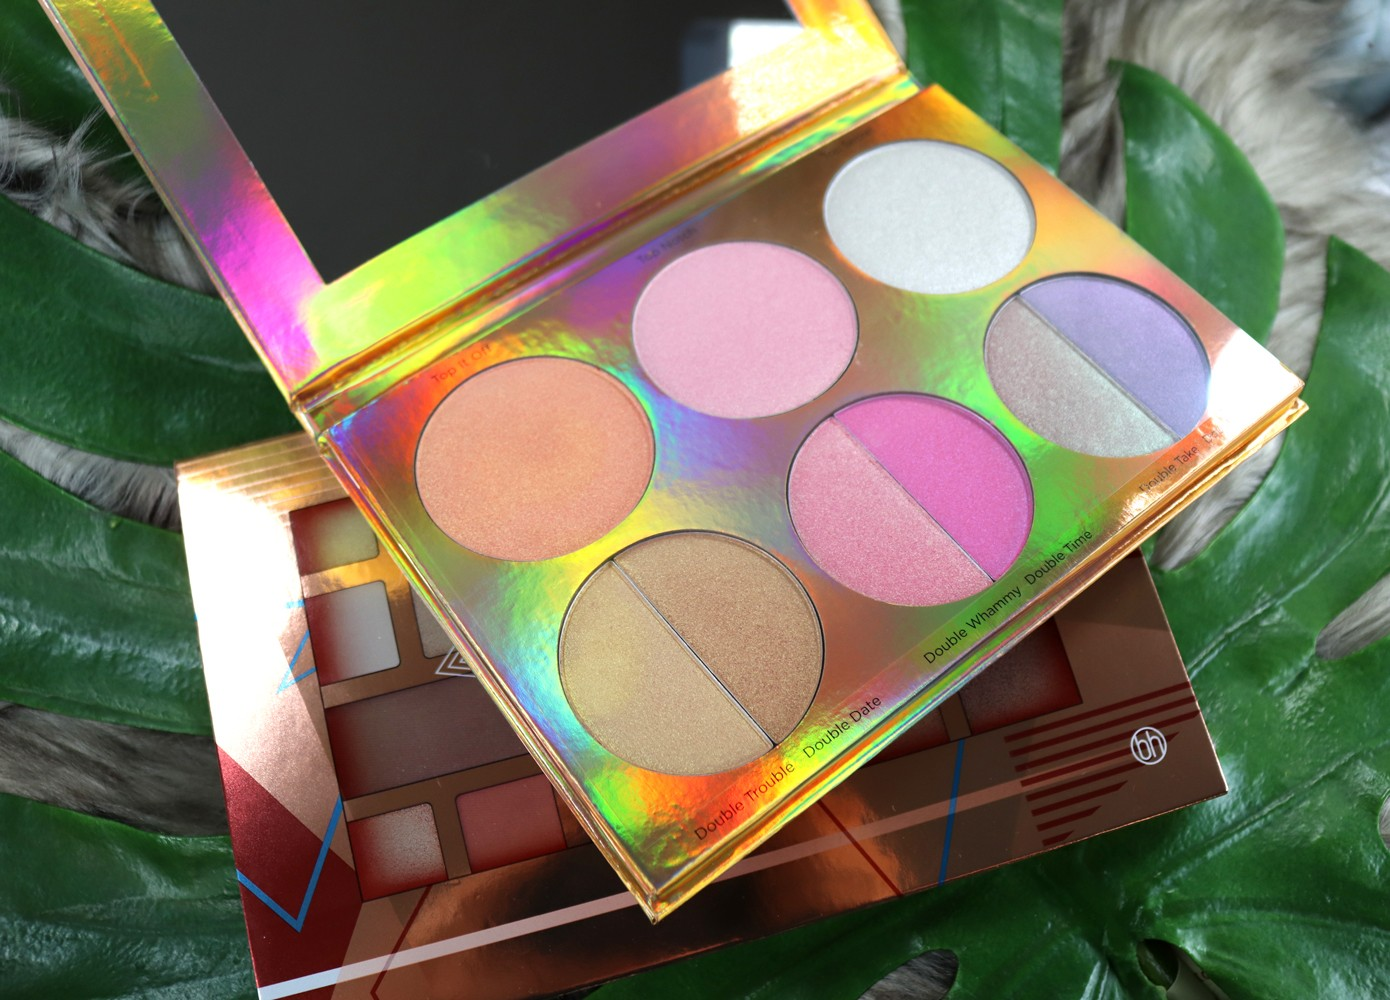 BH Cosmetics Highlighter Giveaway